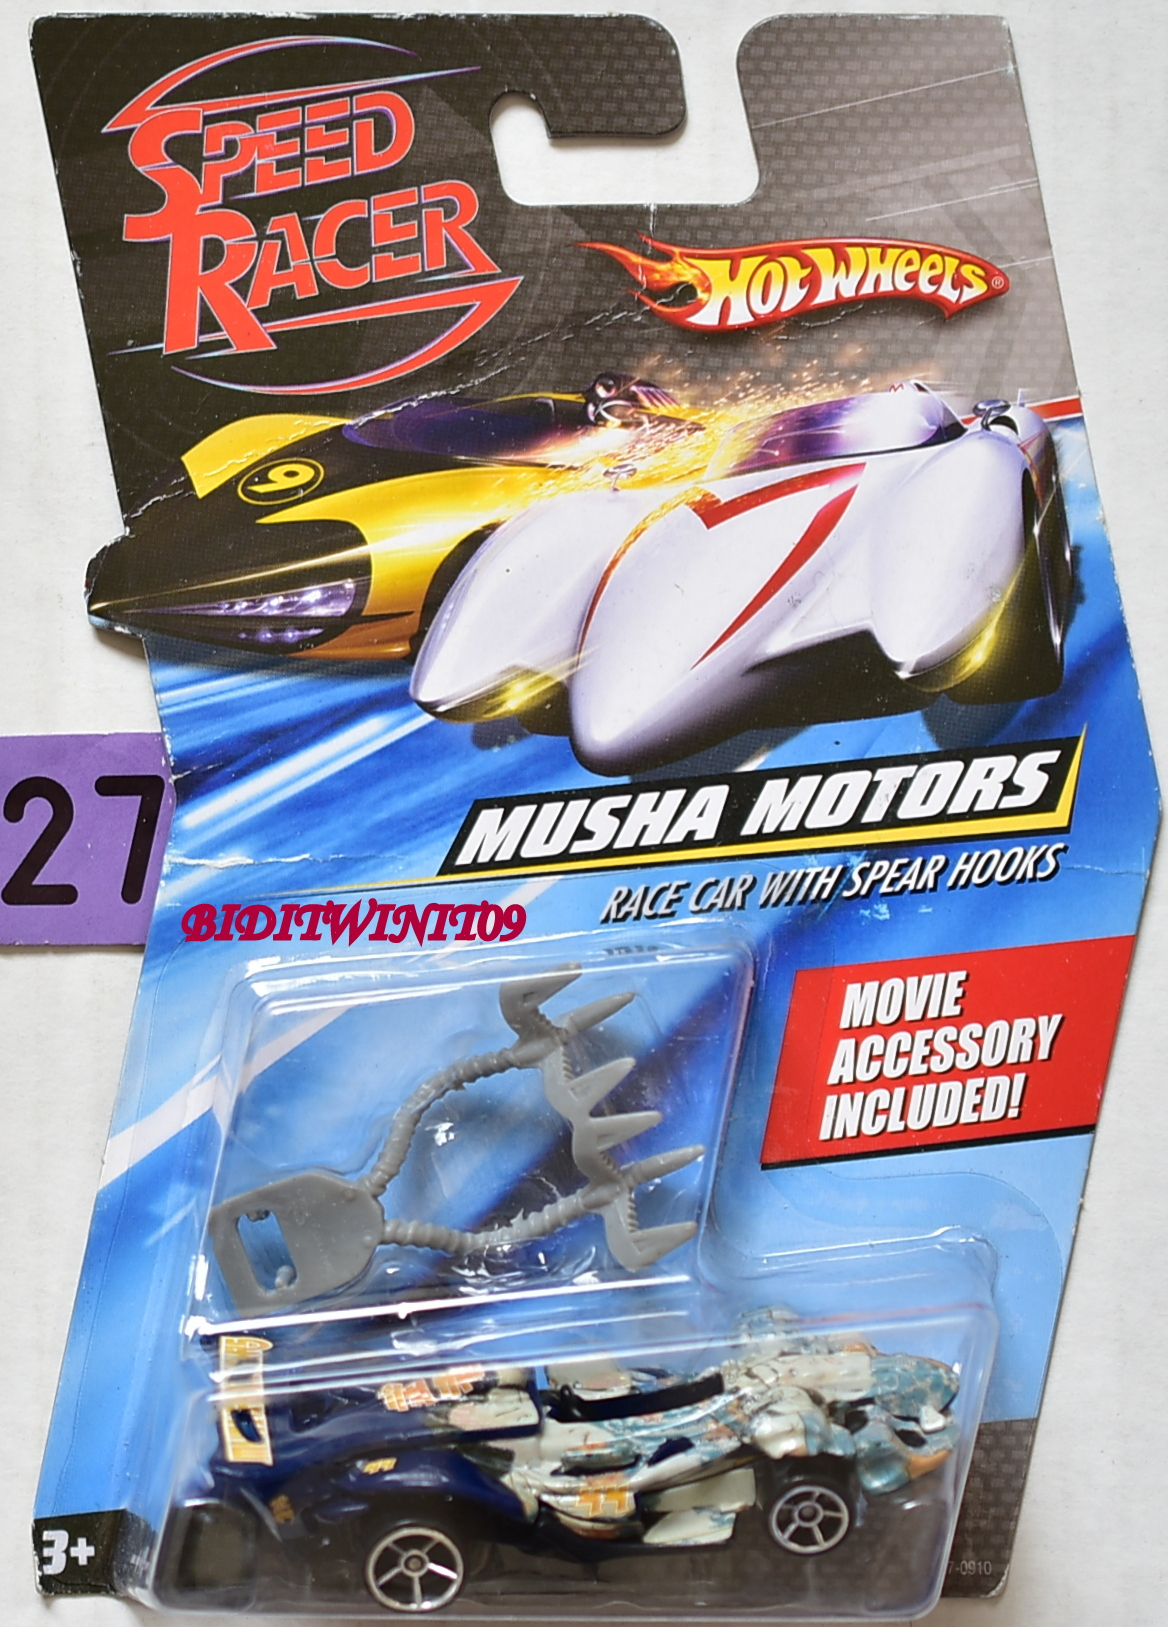 HOT WHEELS SPEED RACER MUSHA MOTORS RACE CAR WITH SPEAR HOOKS